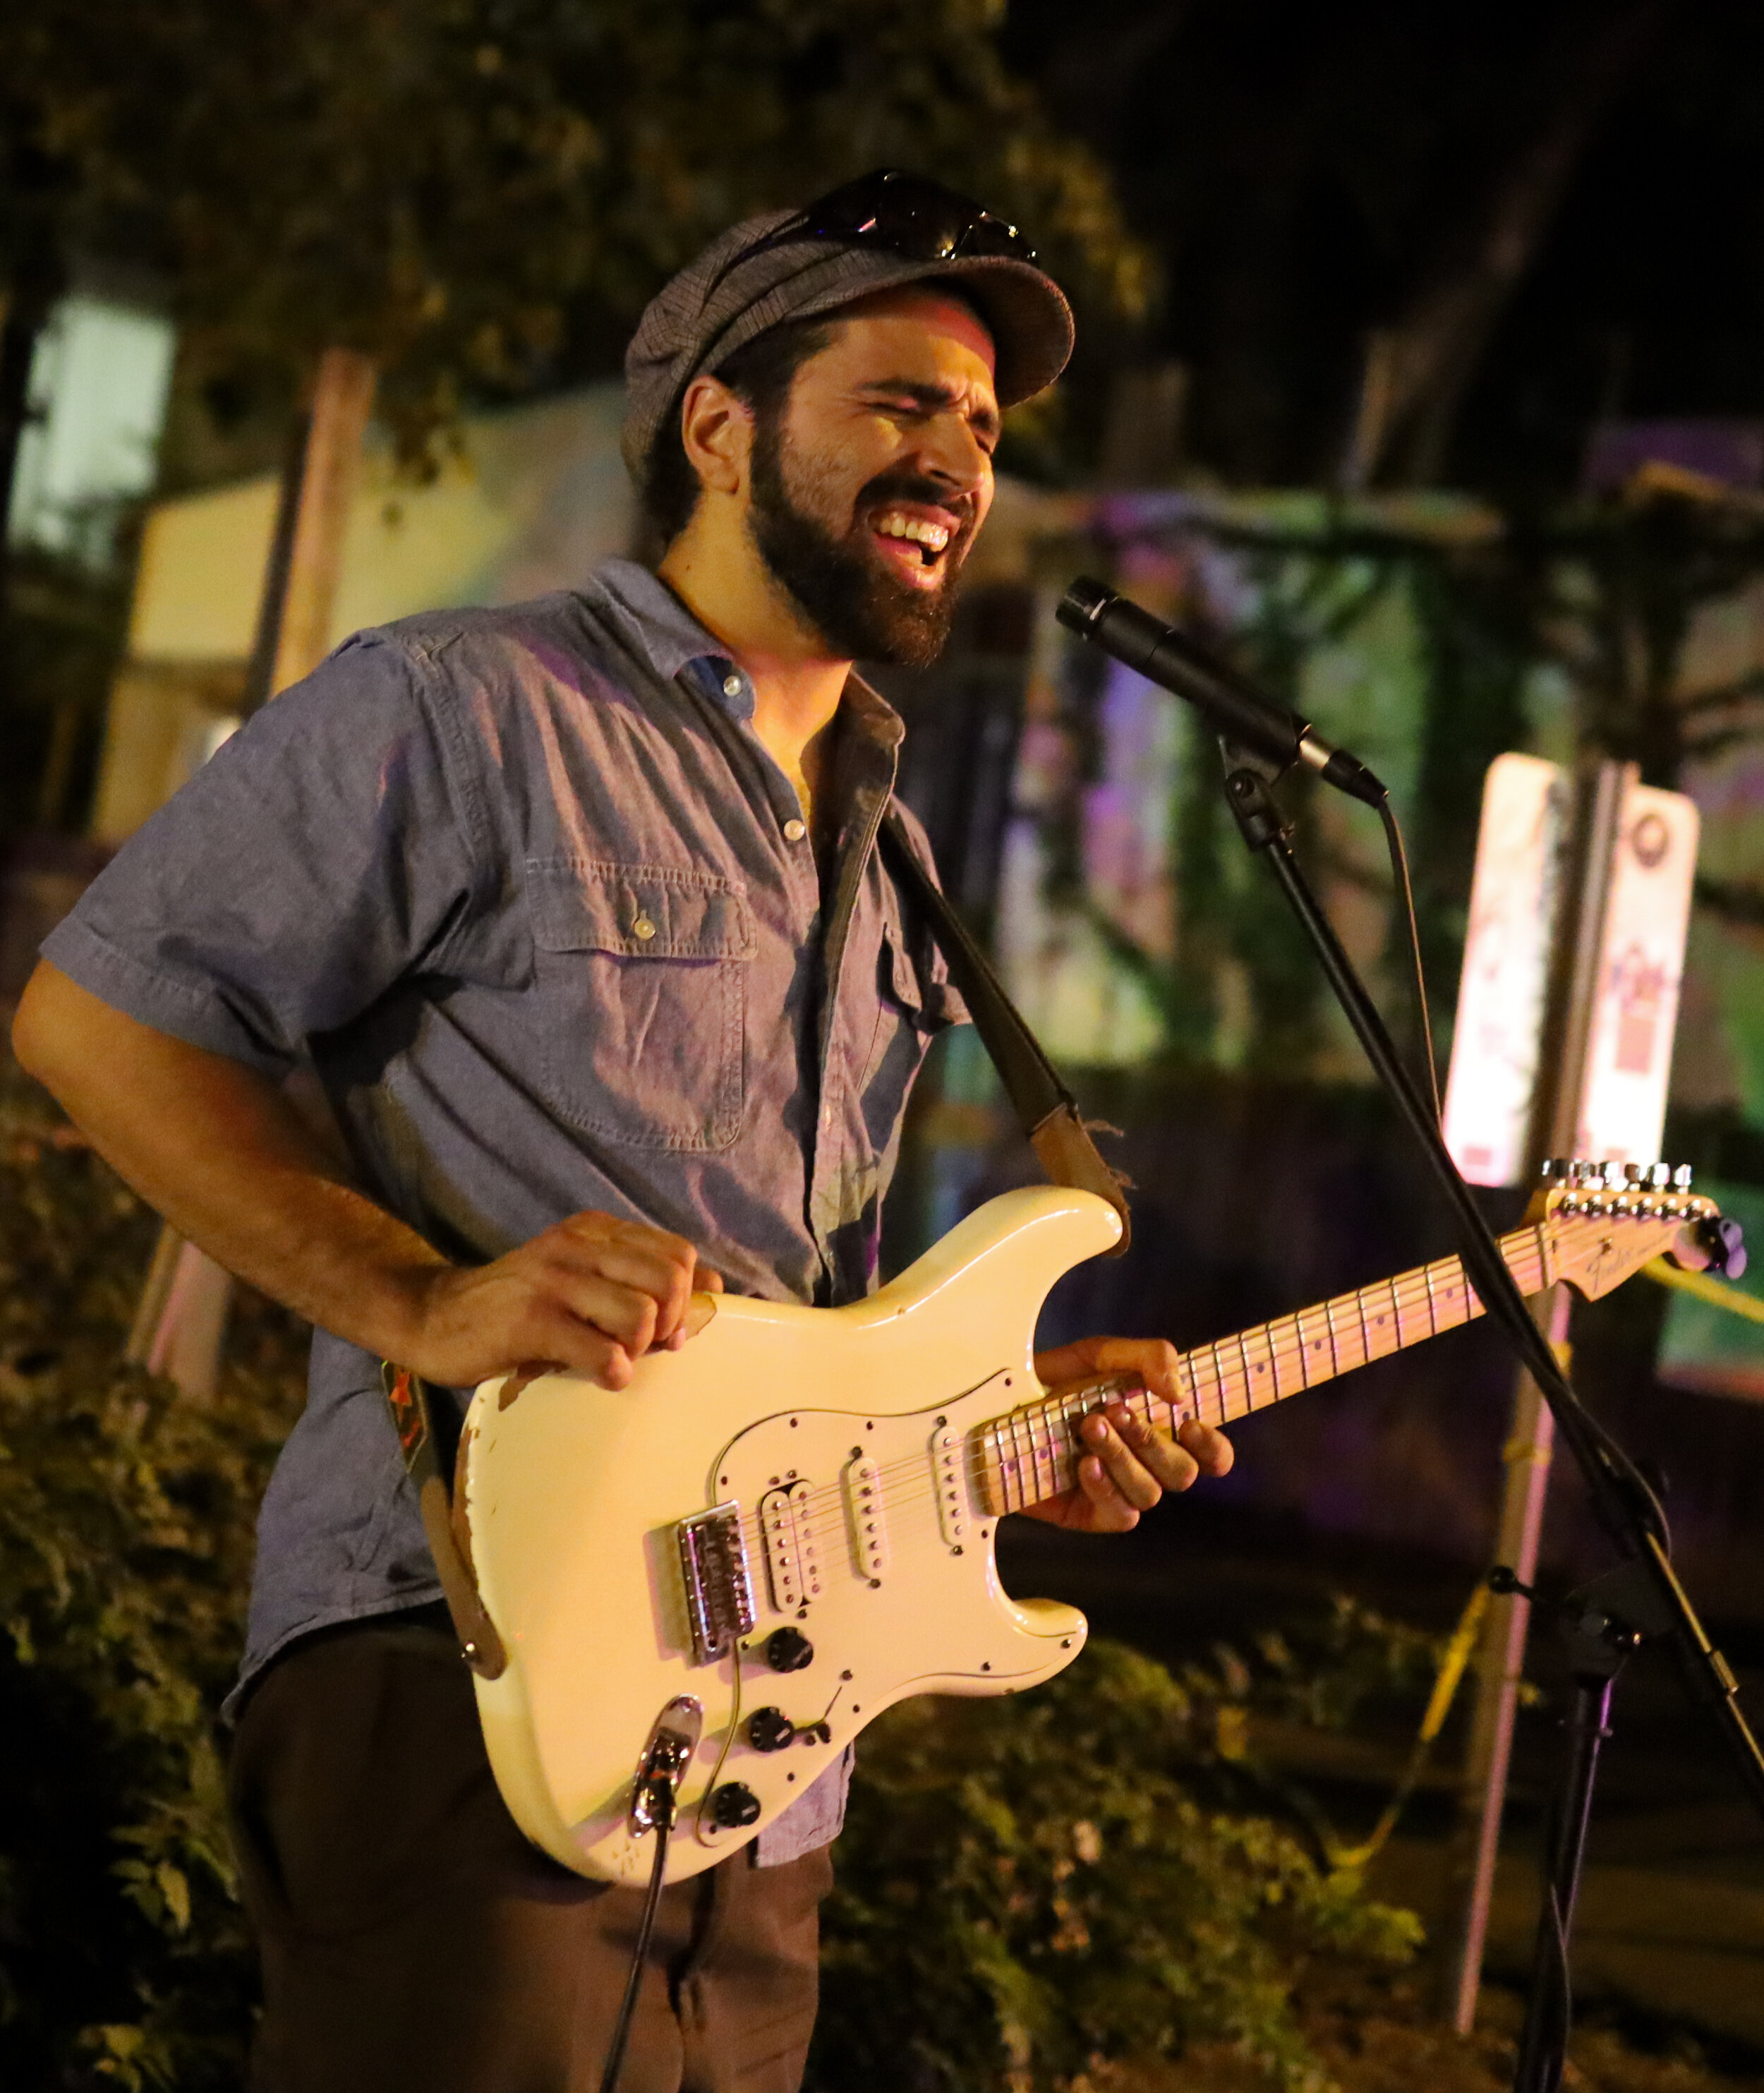 Michael Simon plays and sings for the crowd along Barton Springs Road